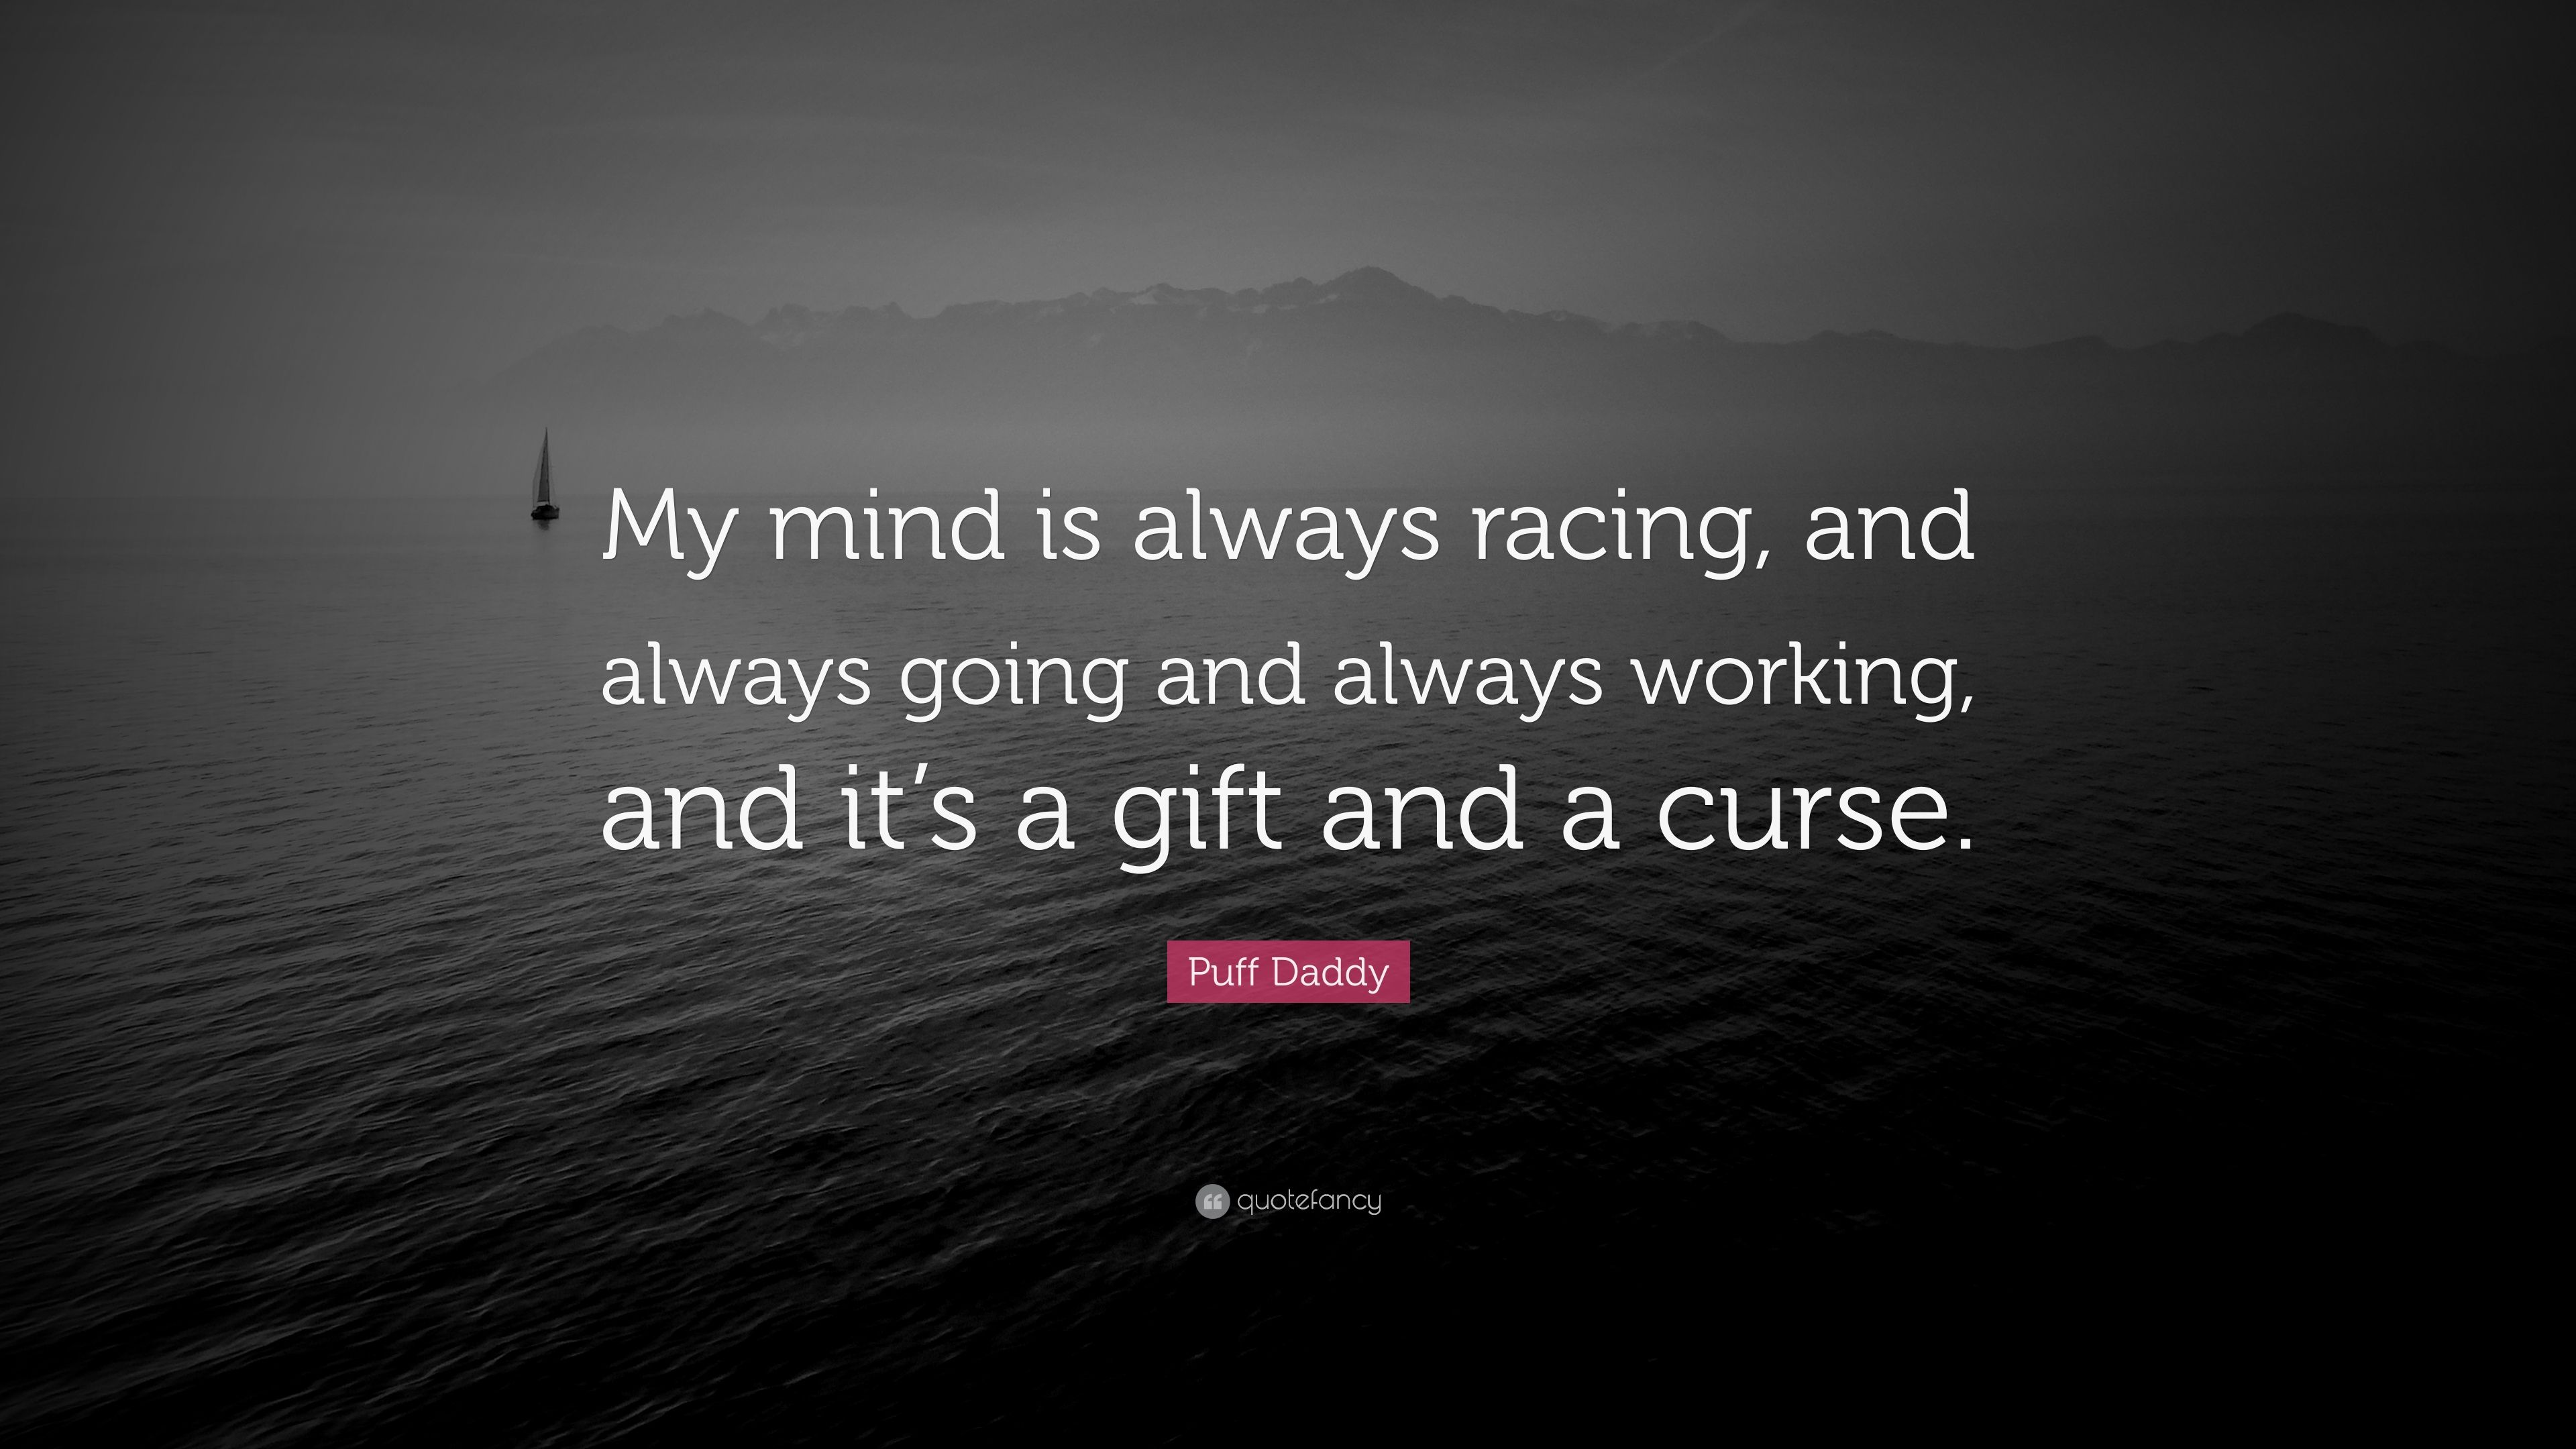 Puff Daddy Quote My Mind Is Always Racing And Always Going And Always Working And It S A Gift And A Curse 7 Wallpapers Quotefancy